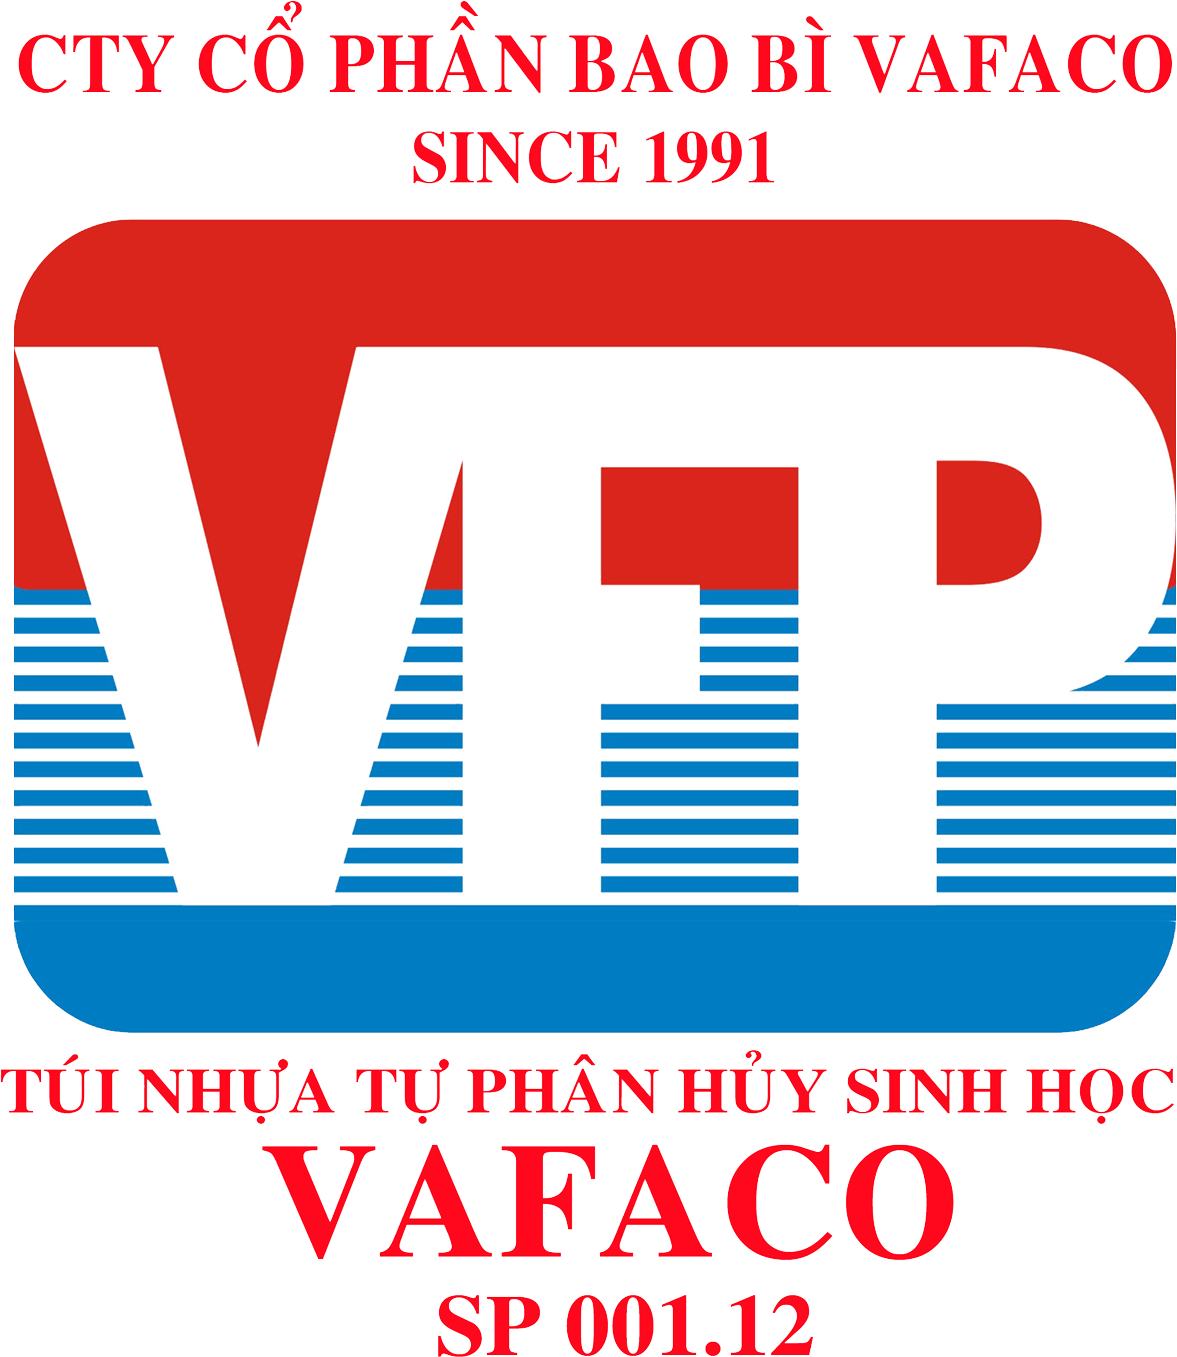 VAFACO Packing Joint Stock Company